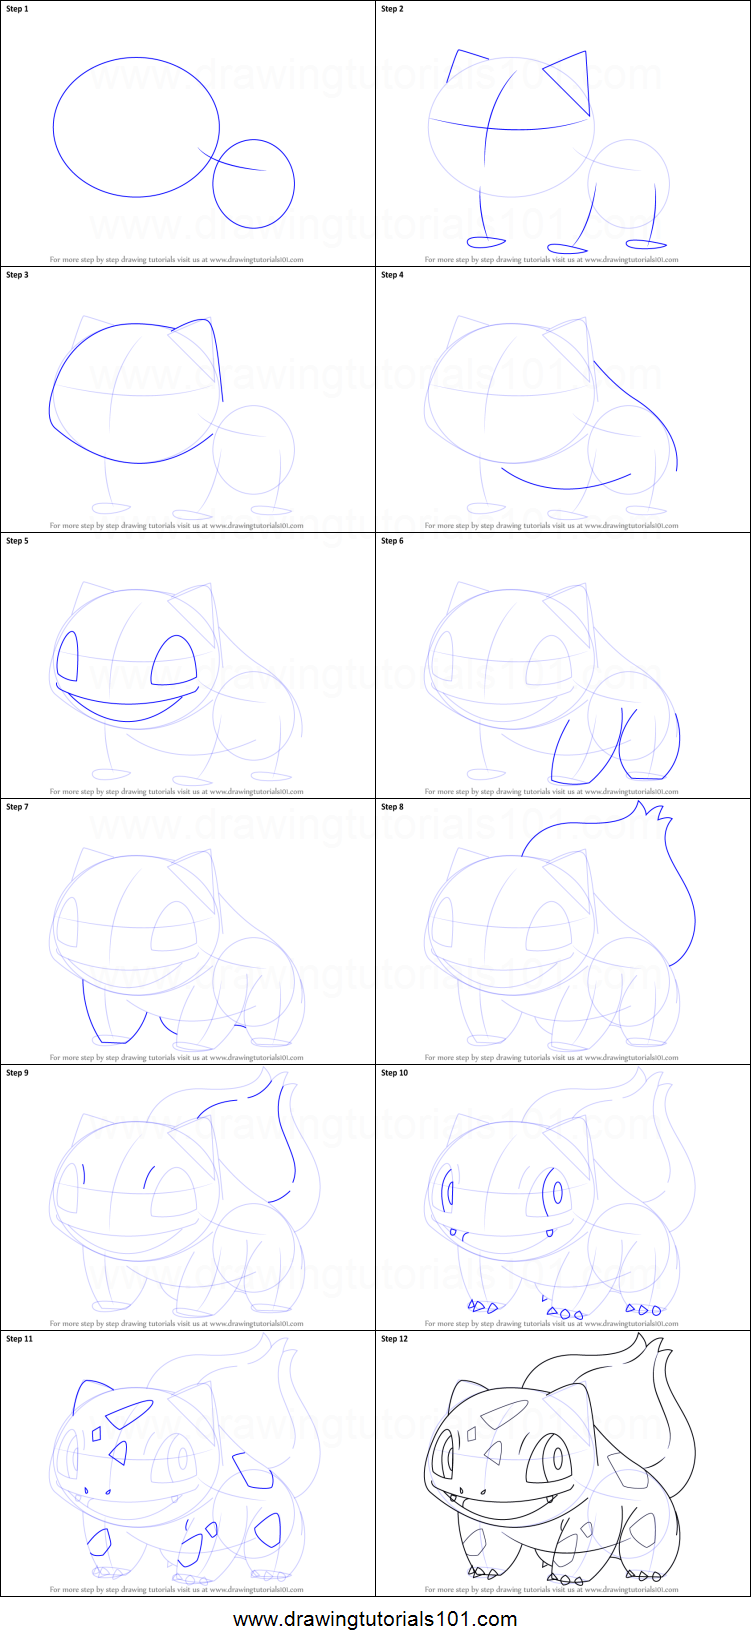 How To Draw Bulbasaur From Pokemon Printable Step By Step